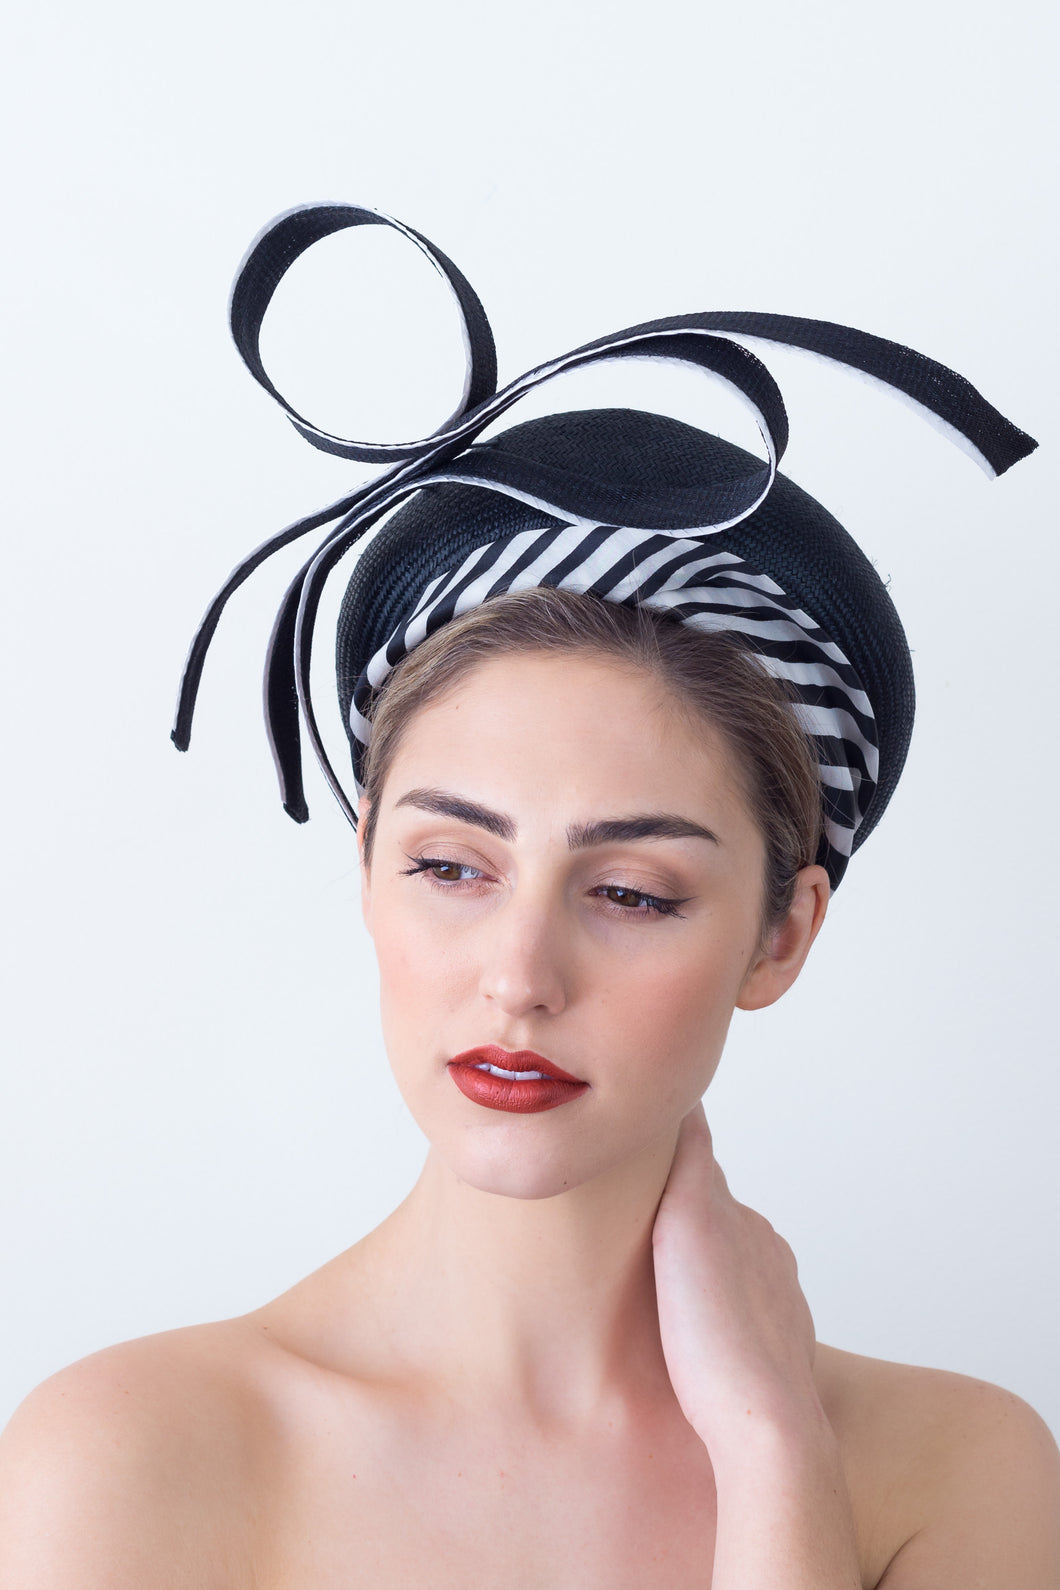 BAILEY BERET- Black and white beret with statement bow